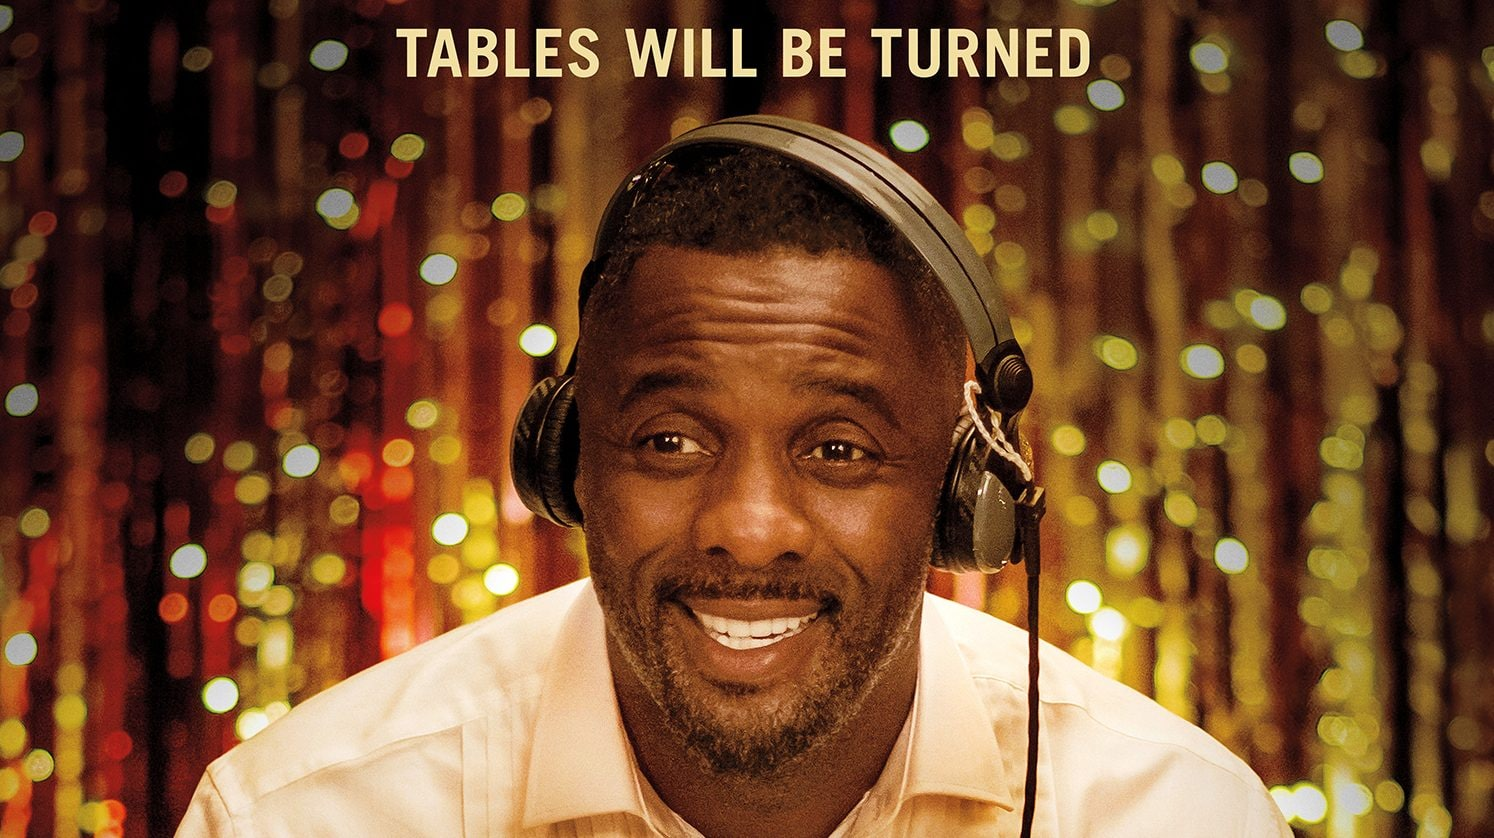 Netflix Unveils Trailer for Idris Elba Comedy Series 'Turn Up Charlie'